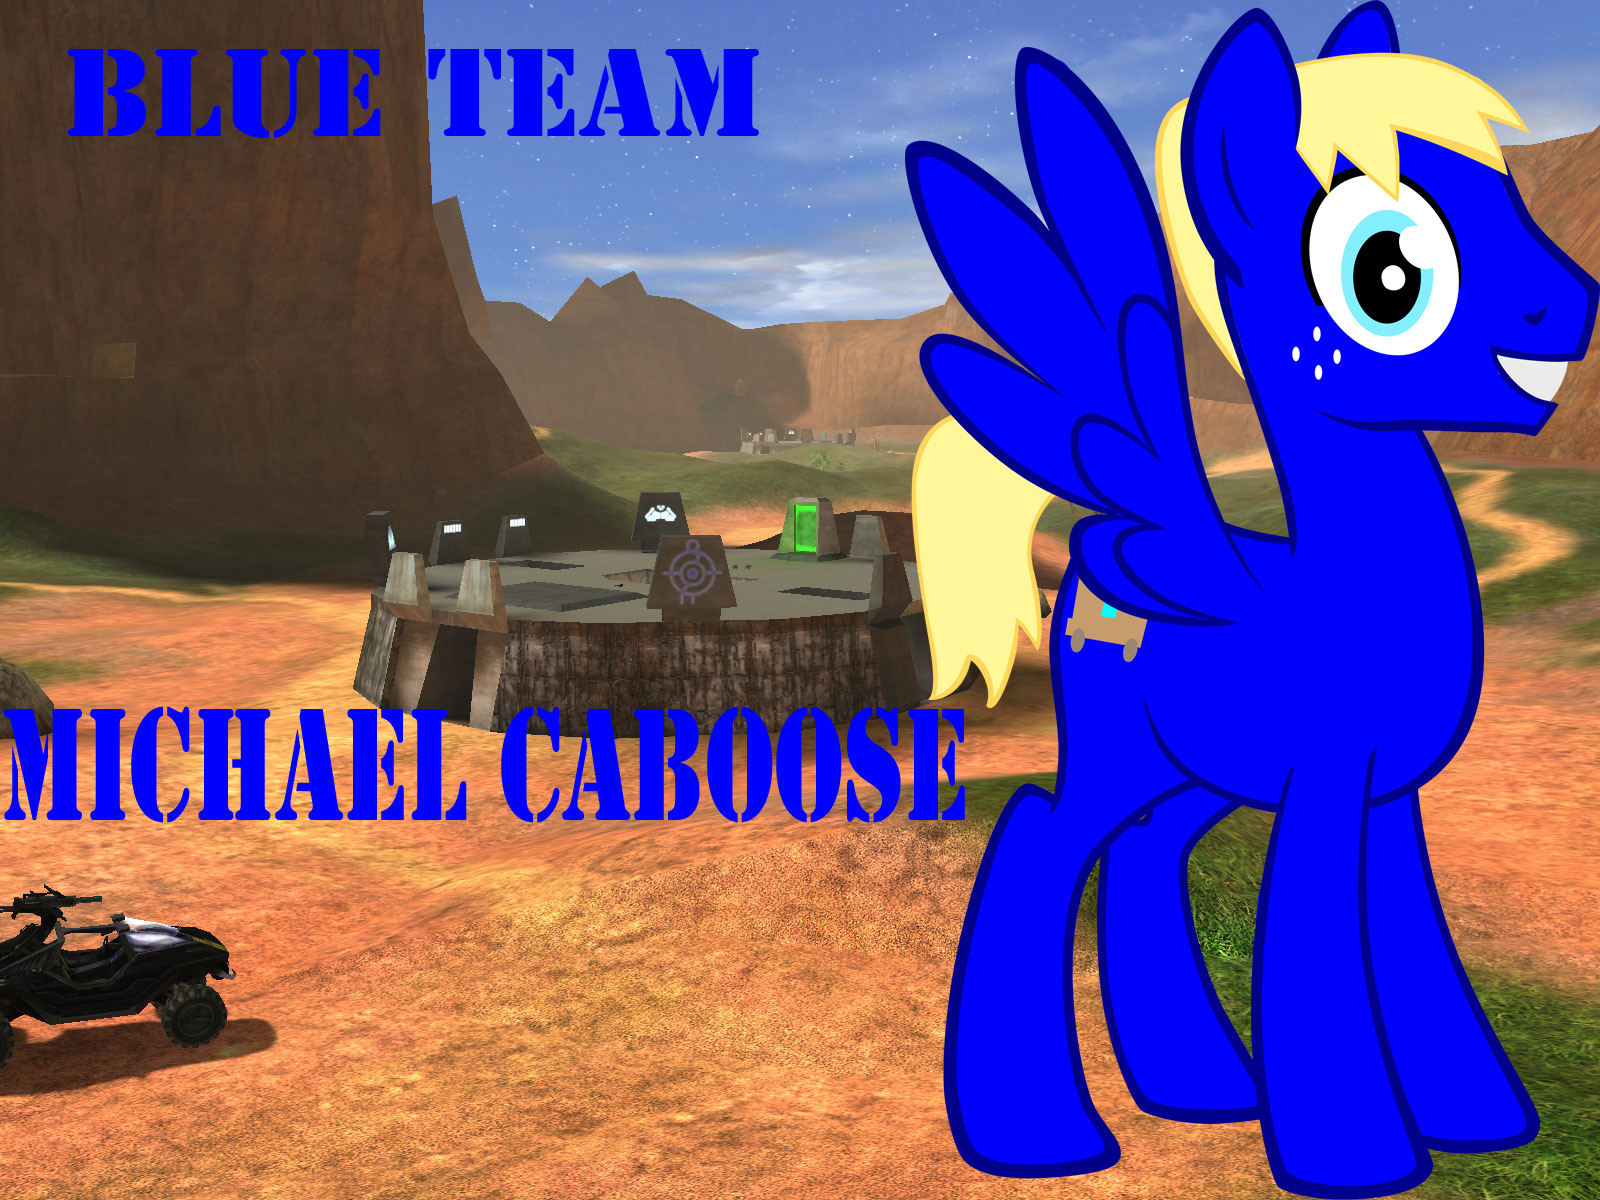 Red vs Blue Ponies - Michael Caboose by VirTaAshi on DeviantArt